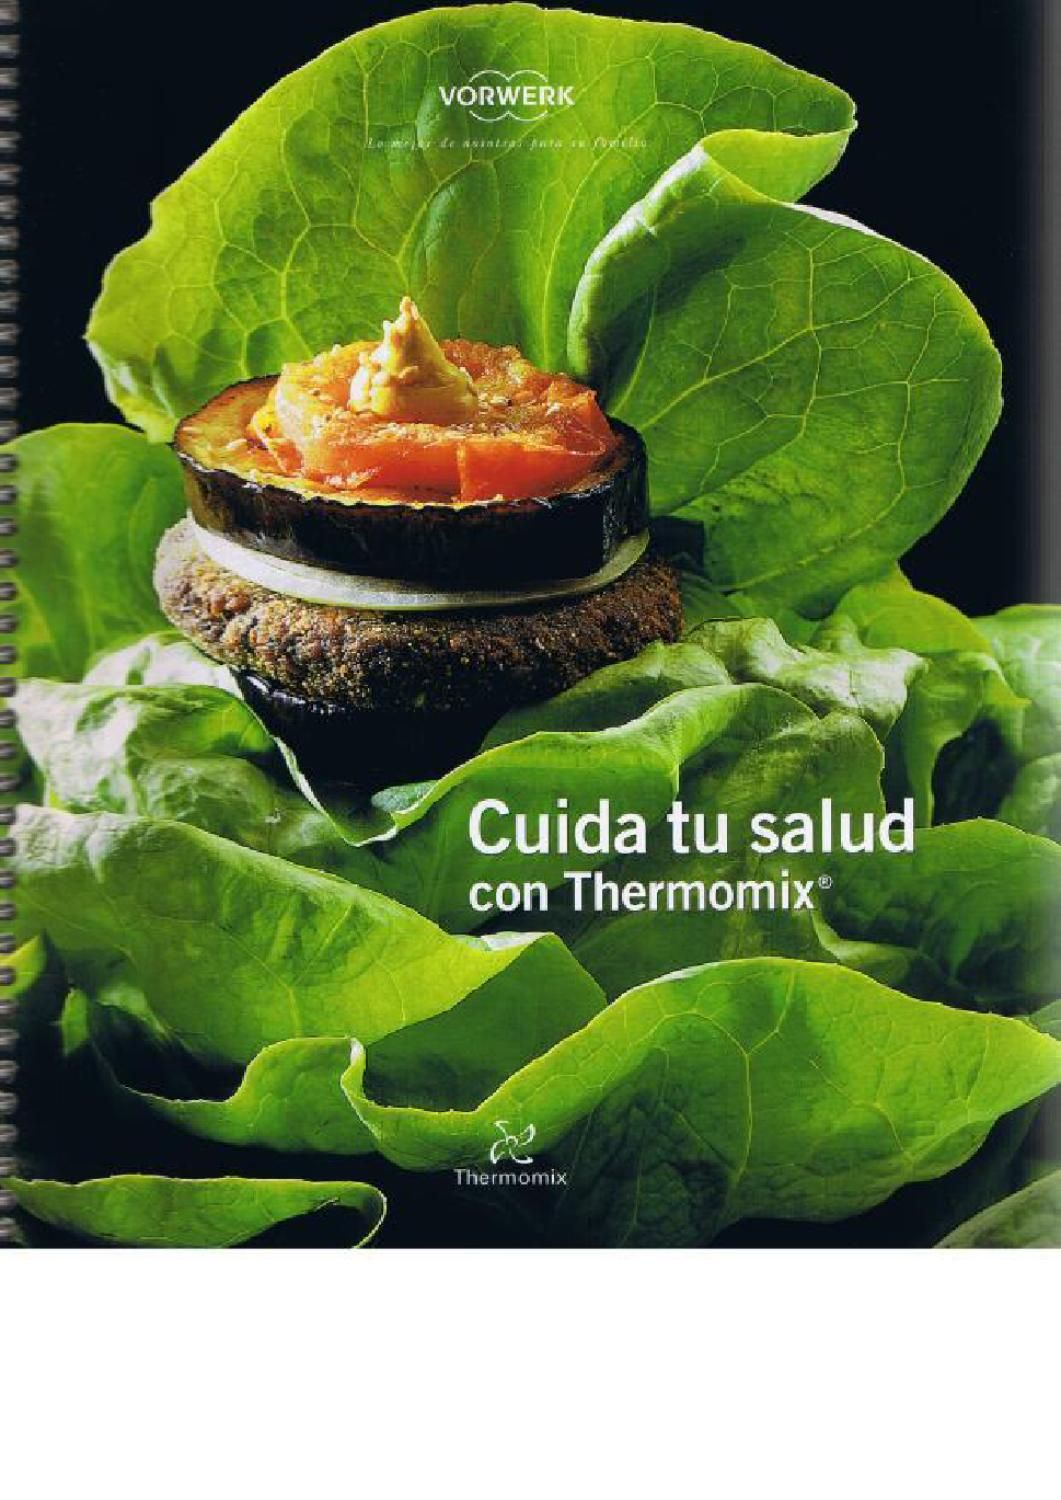 Libros Thermomix Cuida Tu Salud Con Tmx Thermomix Pinterest Thermomix